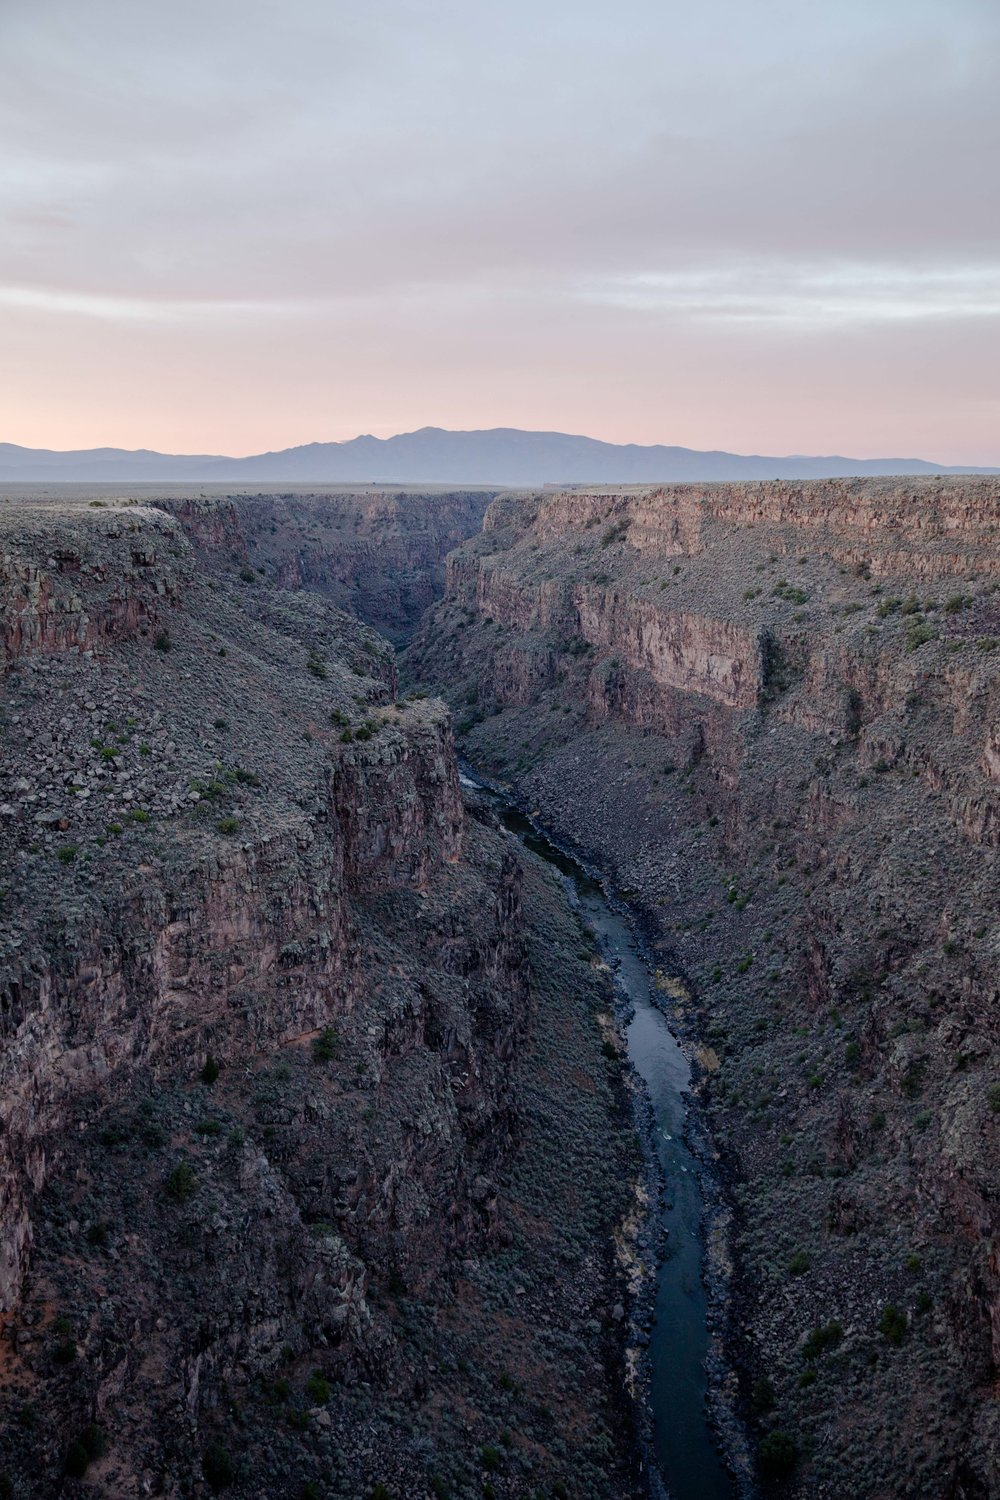 The Rio Grande Gorge, taken from the Gorge Bridge.